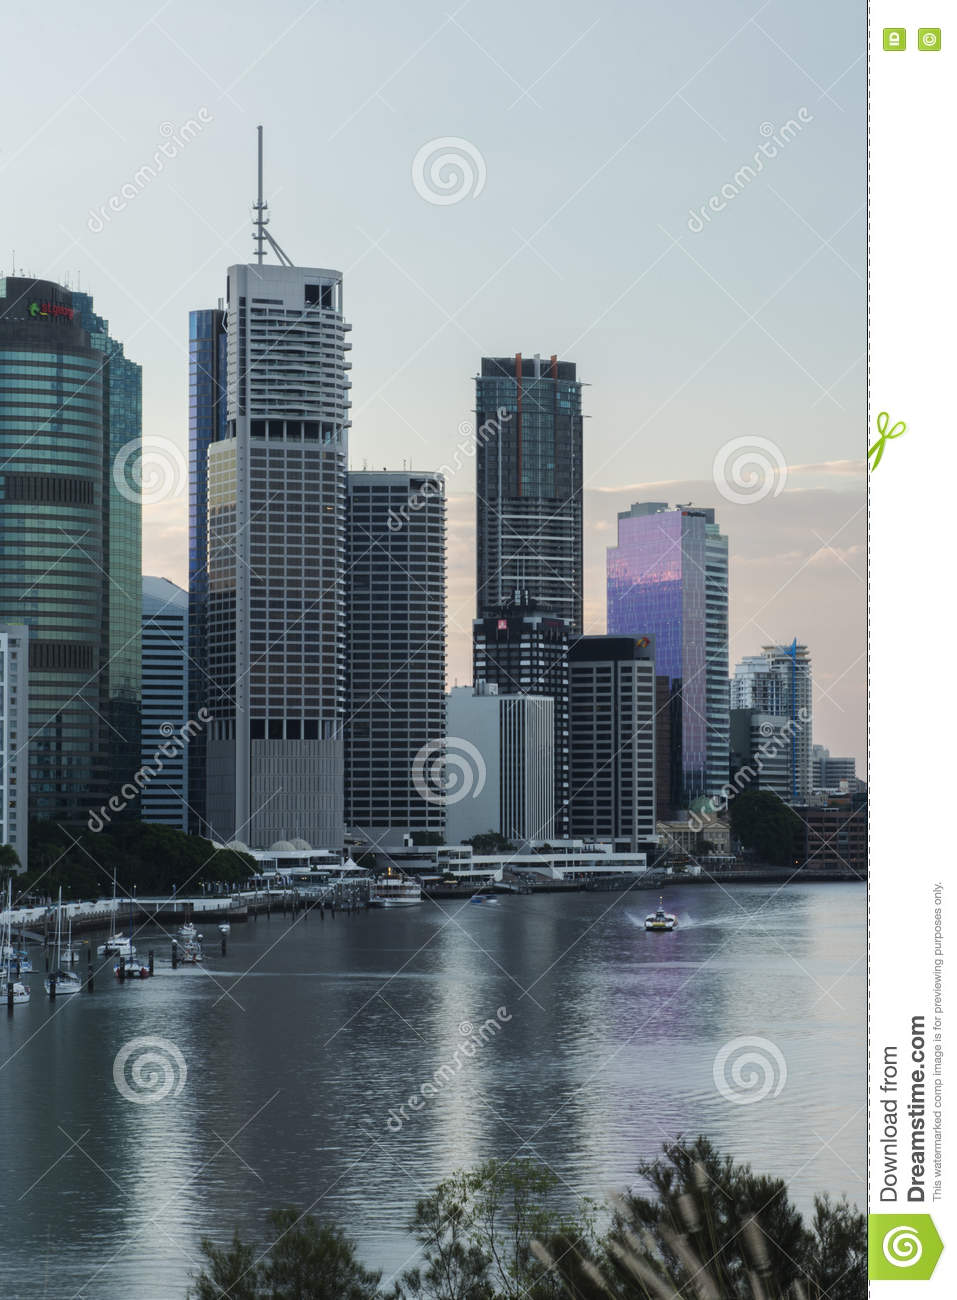 What is the date and time in Brisbane